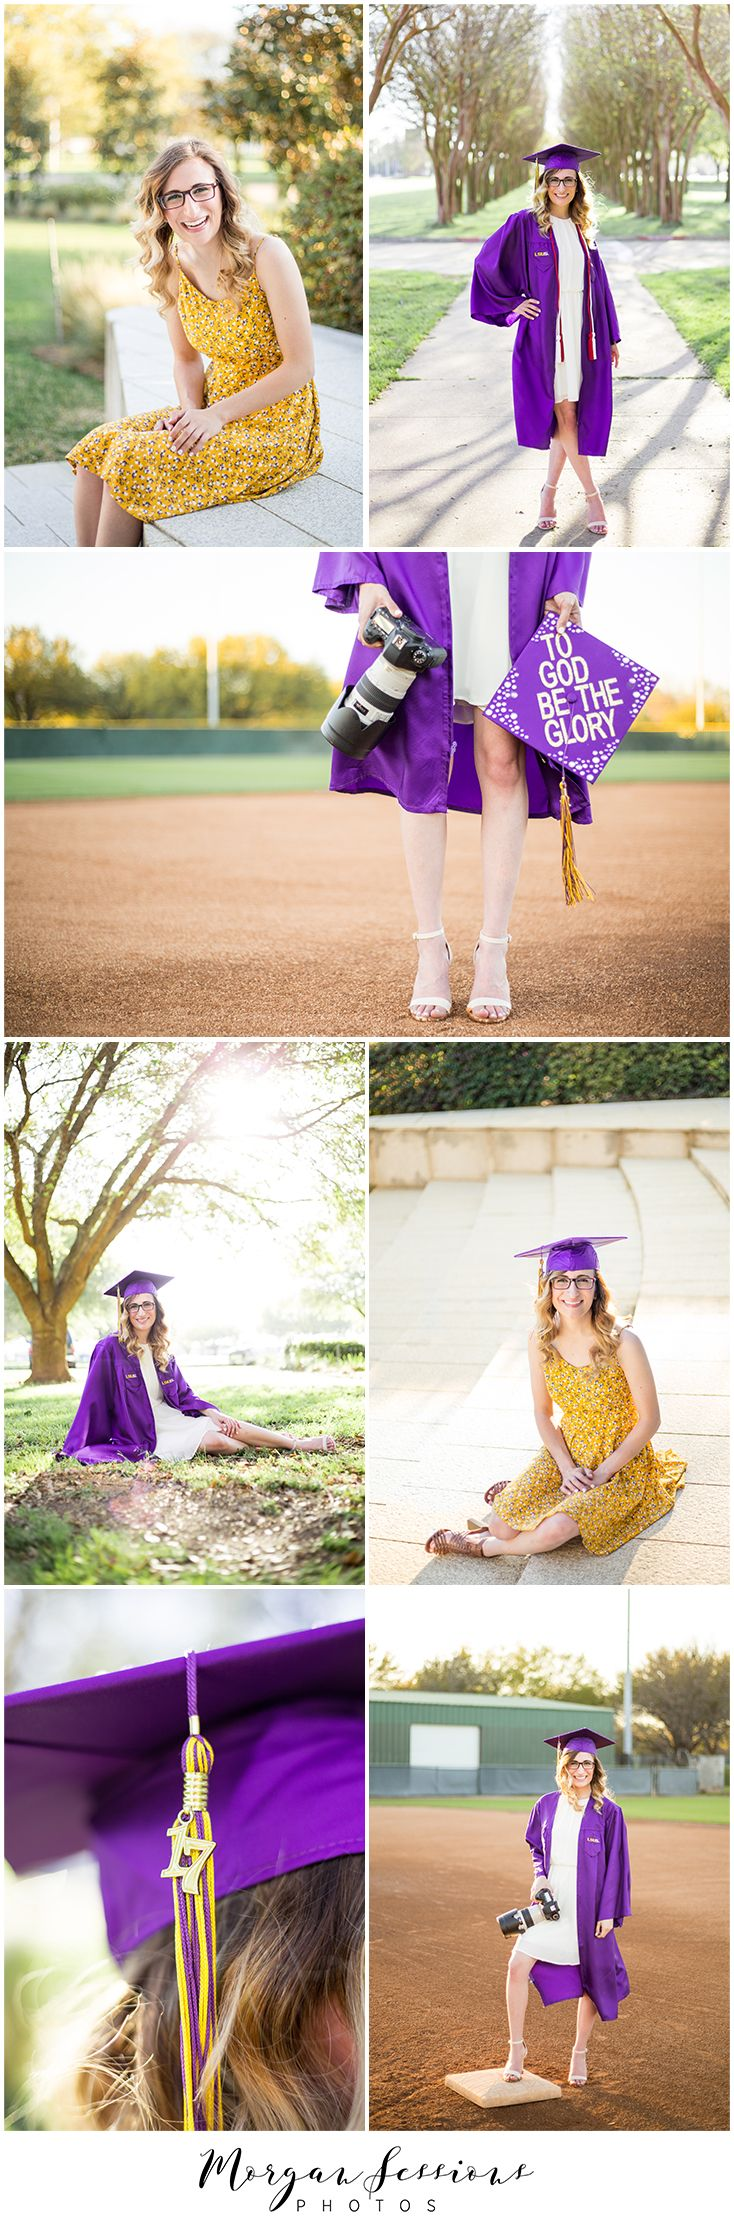 Senior Pictures. Girl Senior. Cap and Gown. Lifestyle Portraits. College Senior. LSU. Purple and Gold. Girl Laughing. Spring Senior Photos. Fashion. Style. Morgan Sessions Photos.